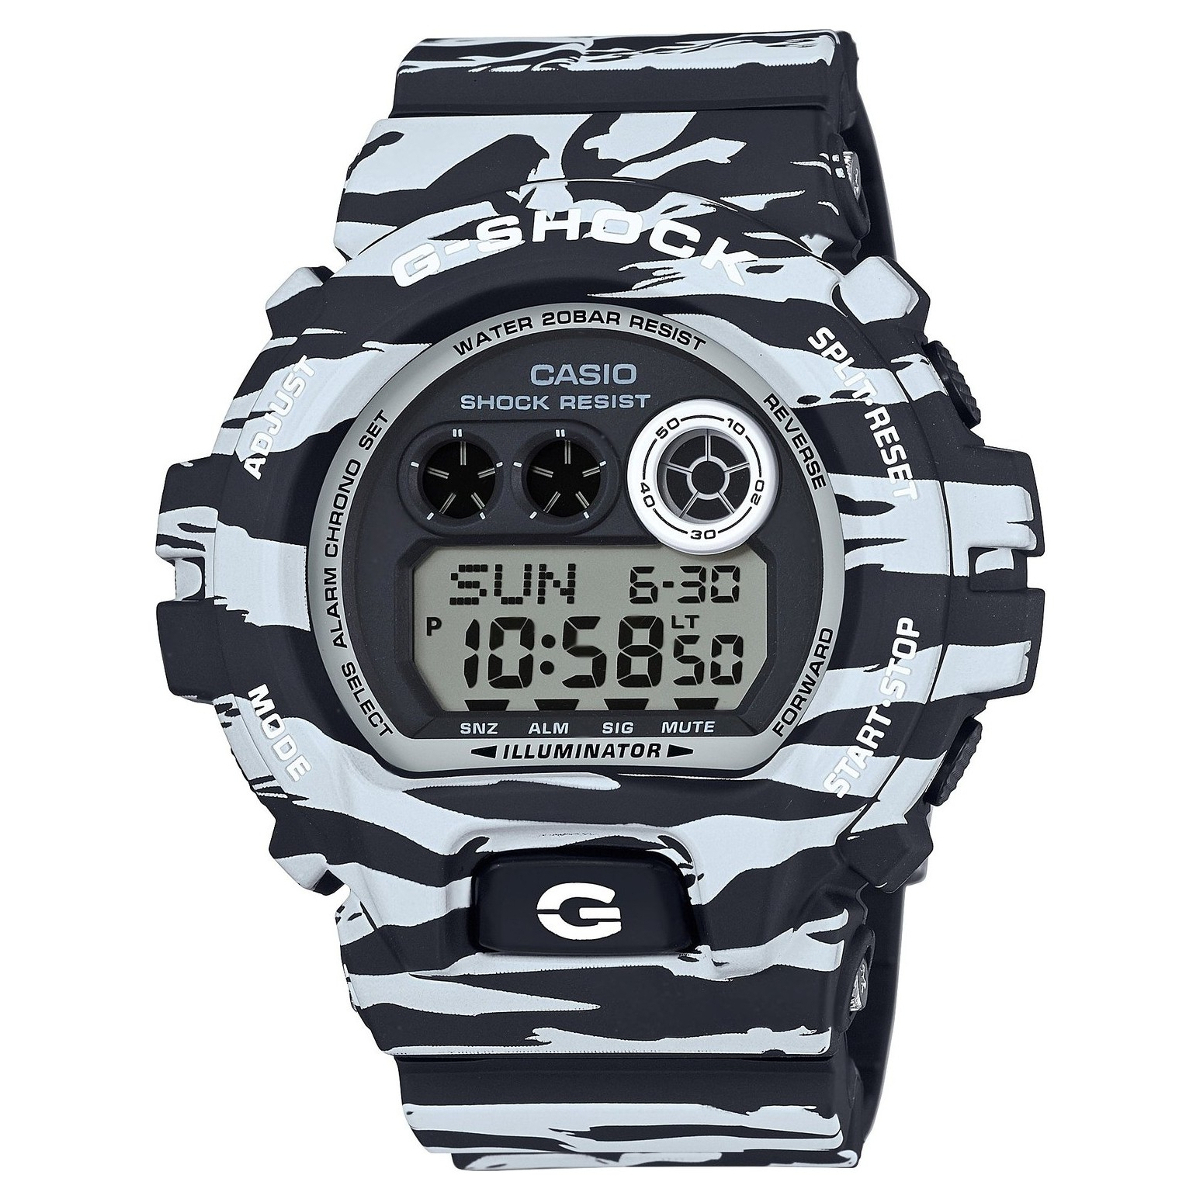 Casio G-shock GD-X6900BW-1E casio часы casio gw 9400 1e коллекция g shock